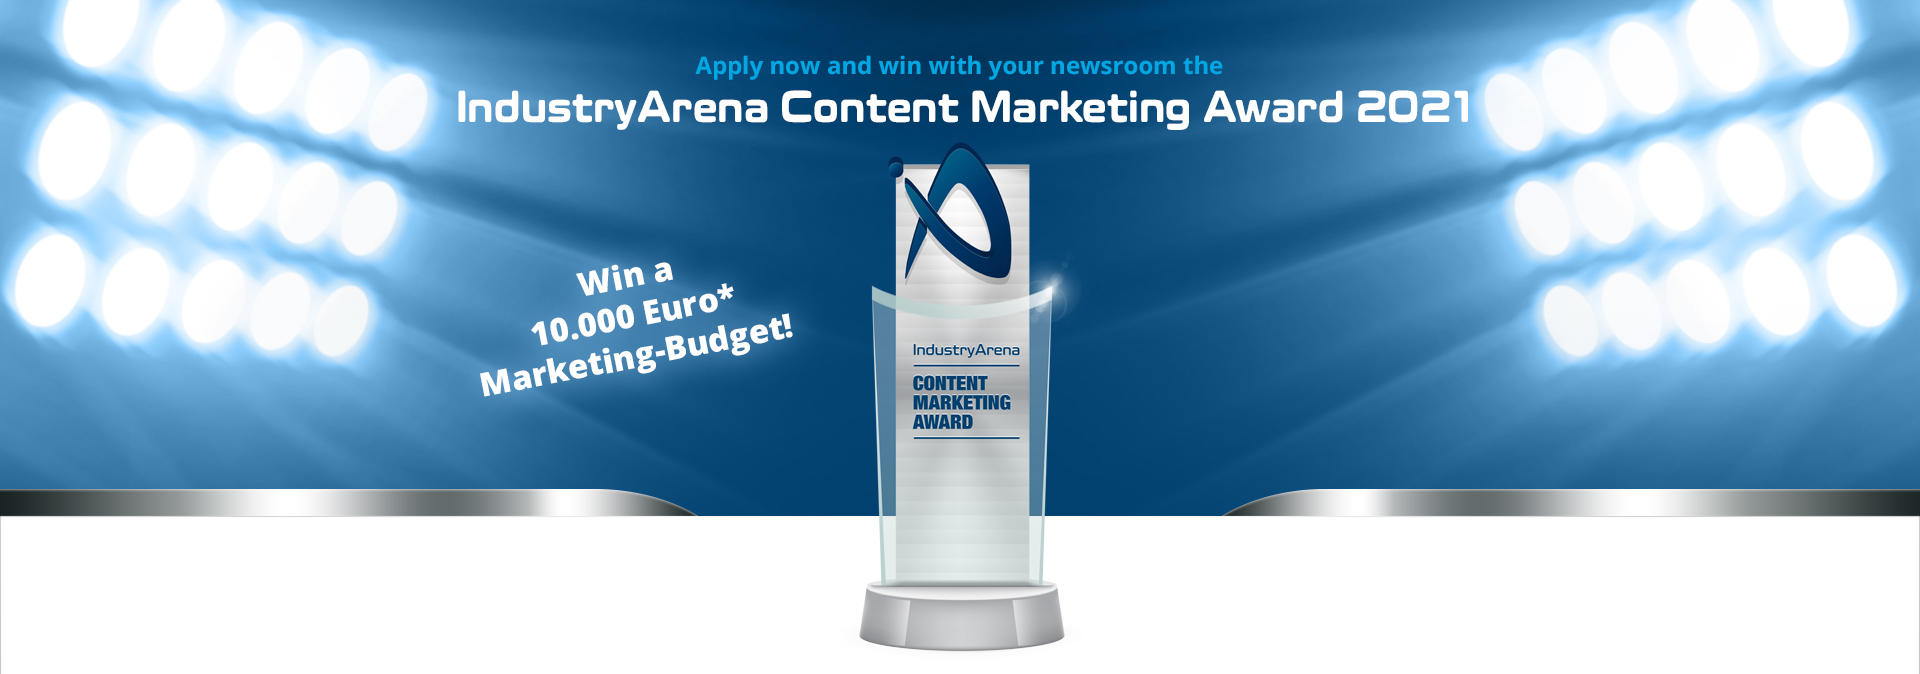 IndustryArena Content Marketing Award 2021